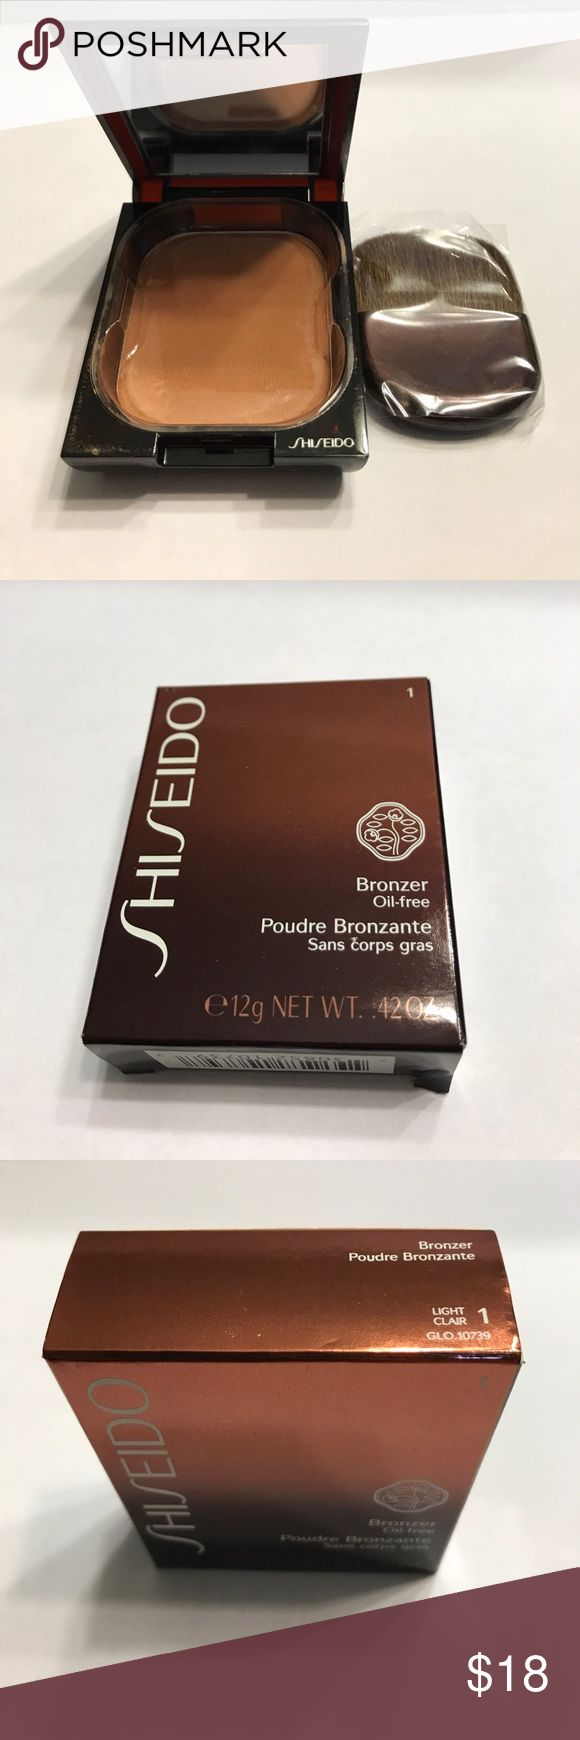 Shiseido Bronzer Oil-Free Light 1 Shiseido Makeup Bronzer